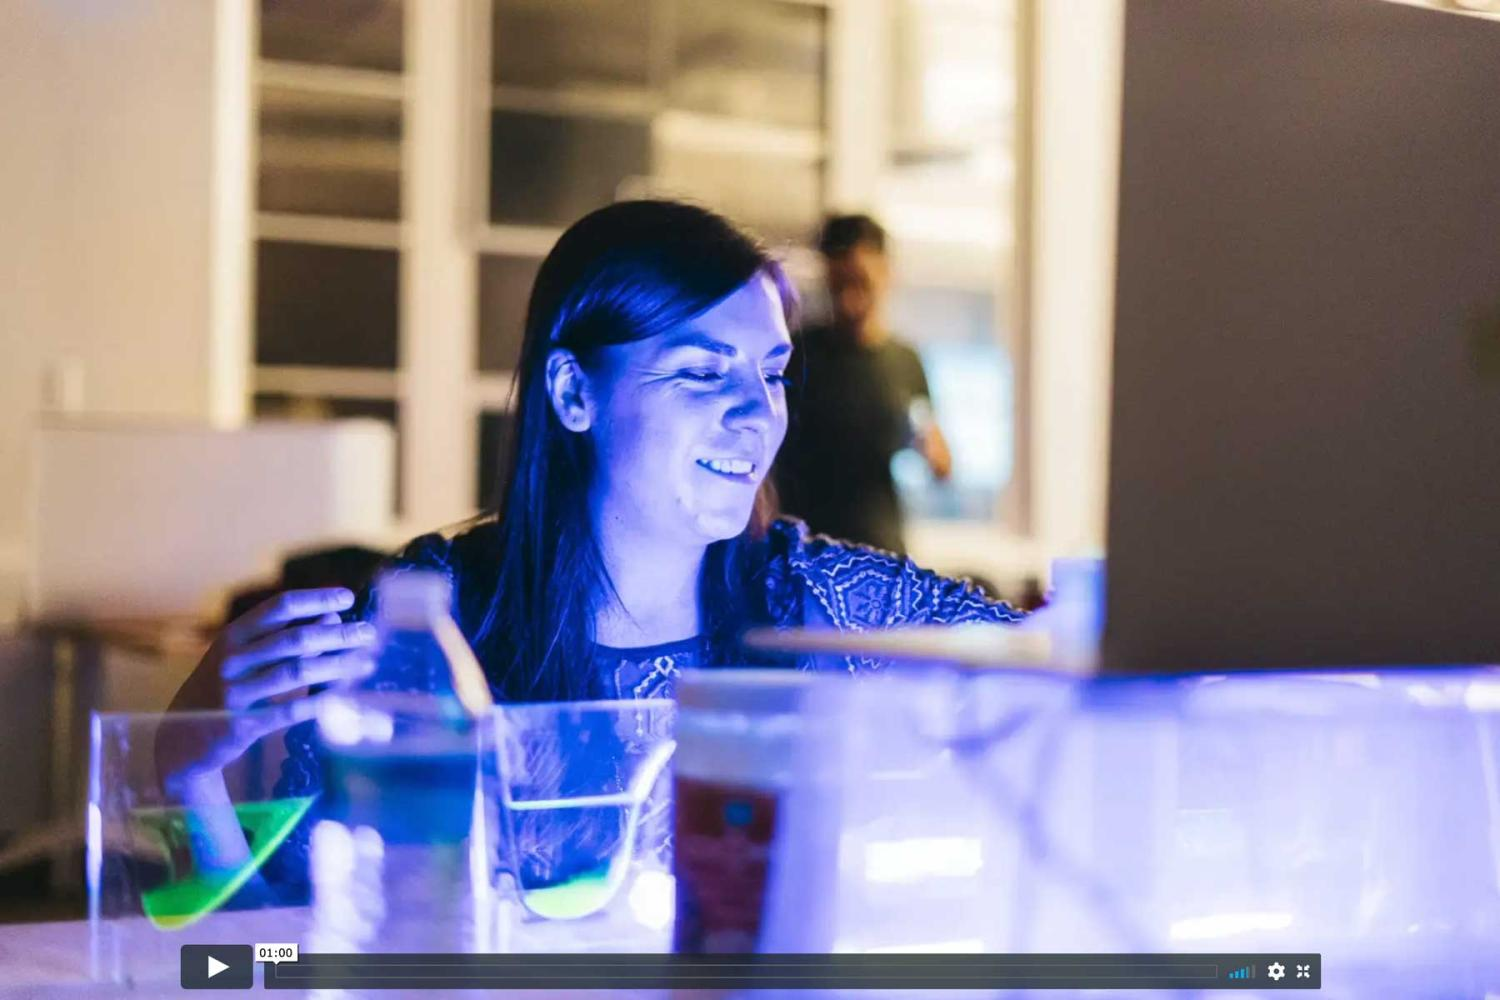 woman bathed in blue light with lab equipment